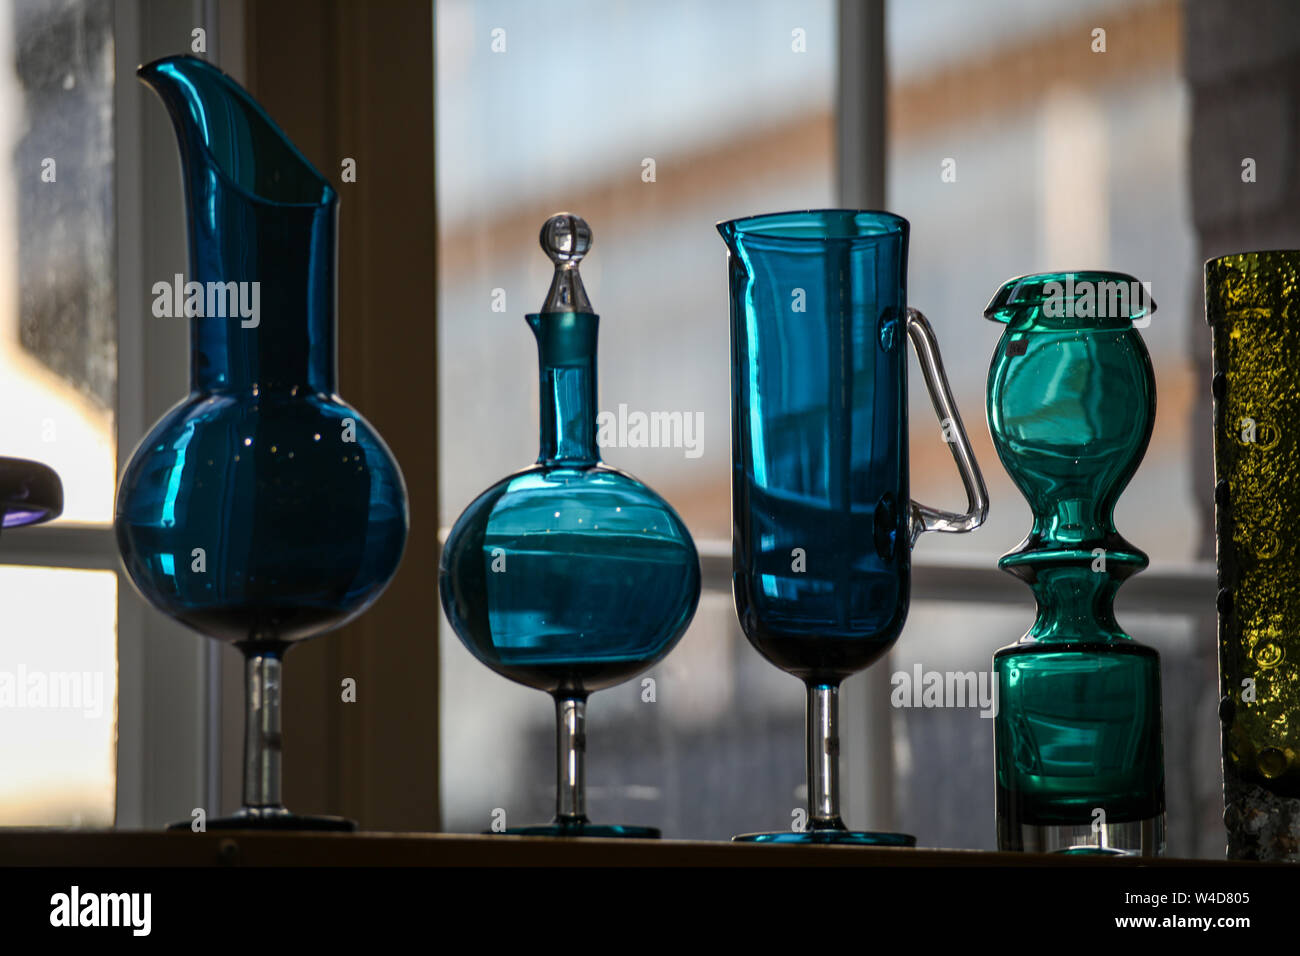 Blue glass ewers and green glass vases at Retro and Vintage Design Expo in Helsinki, Finland Stock Photo